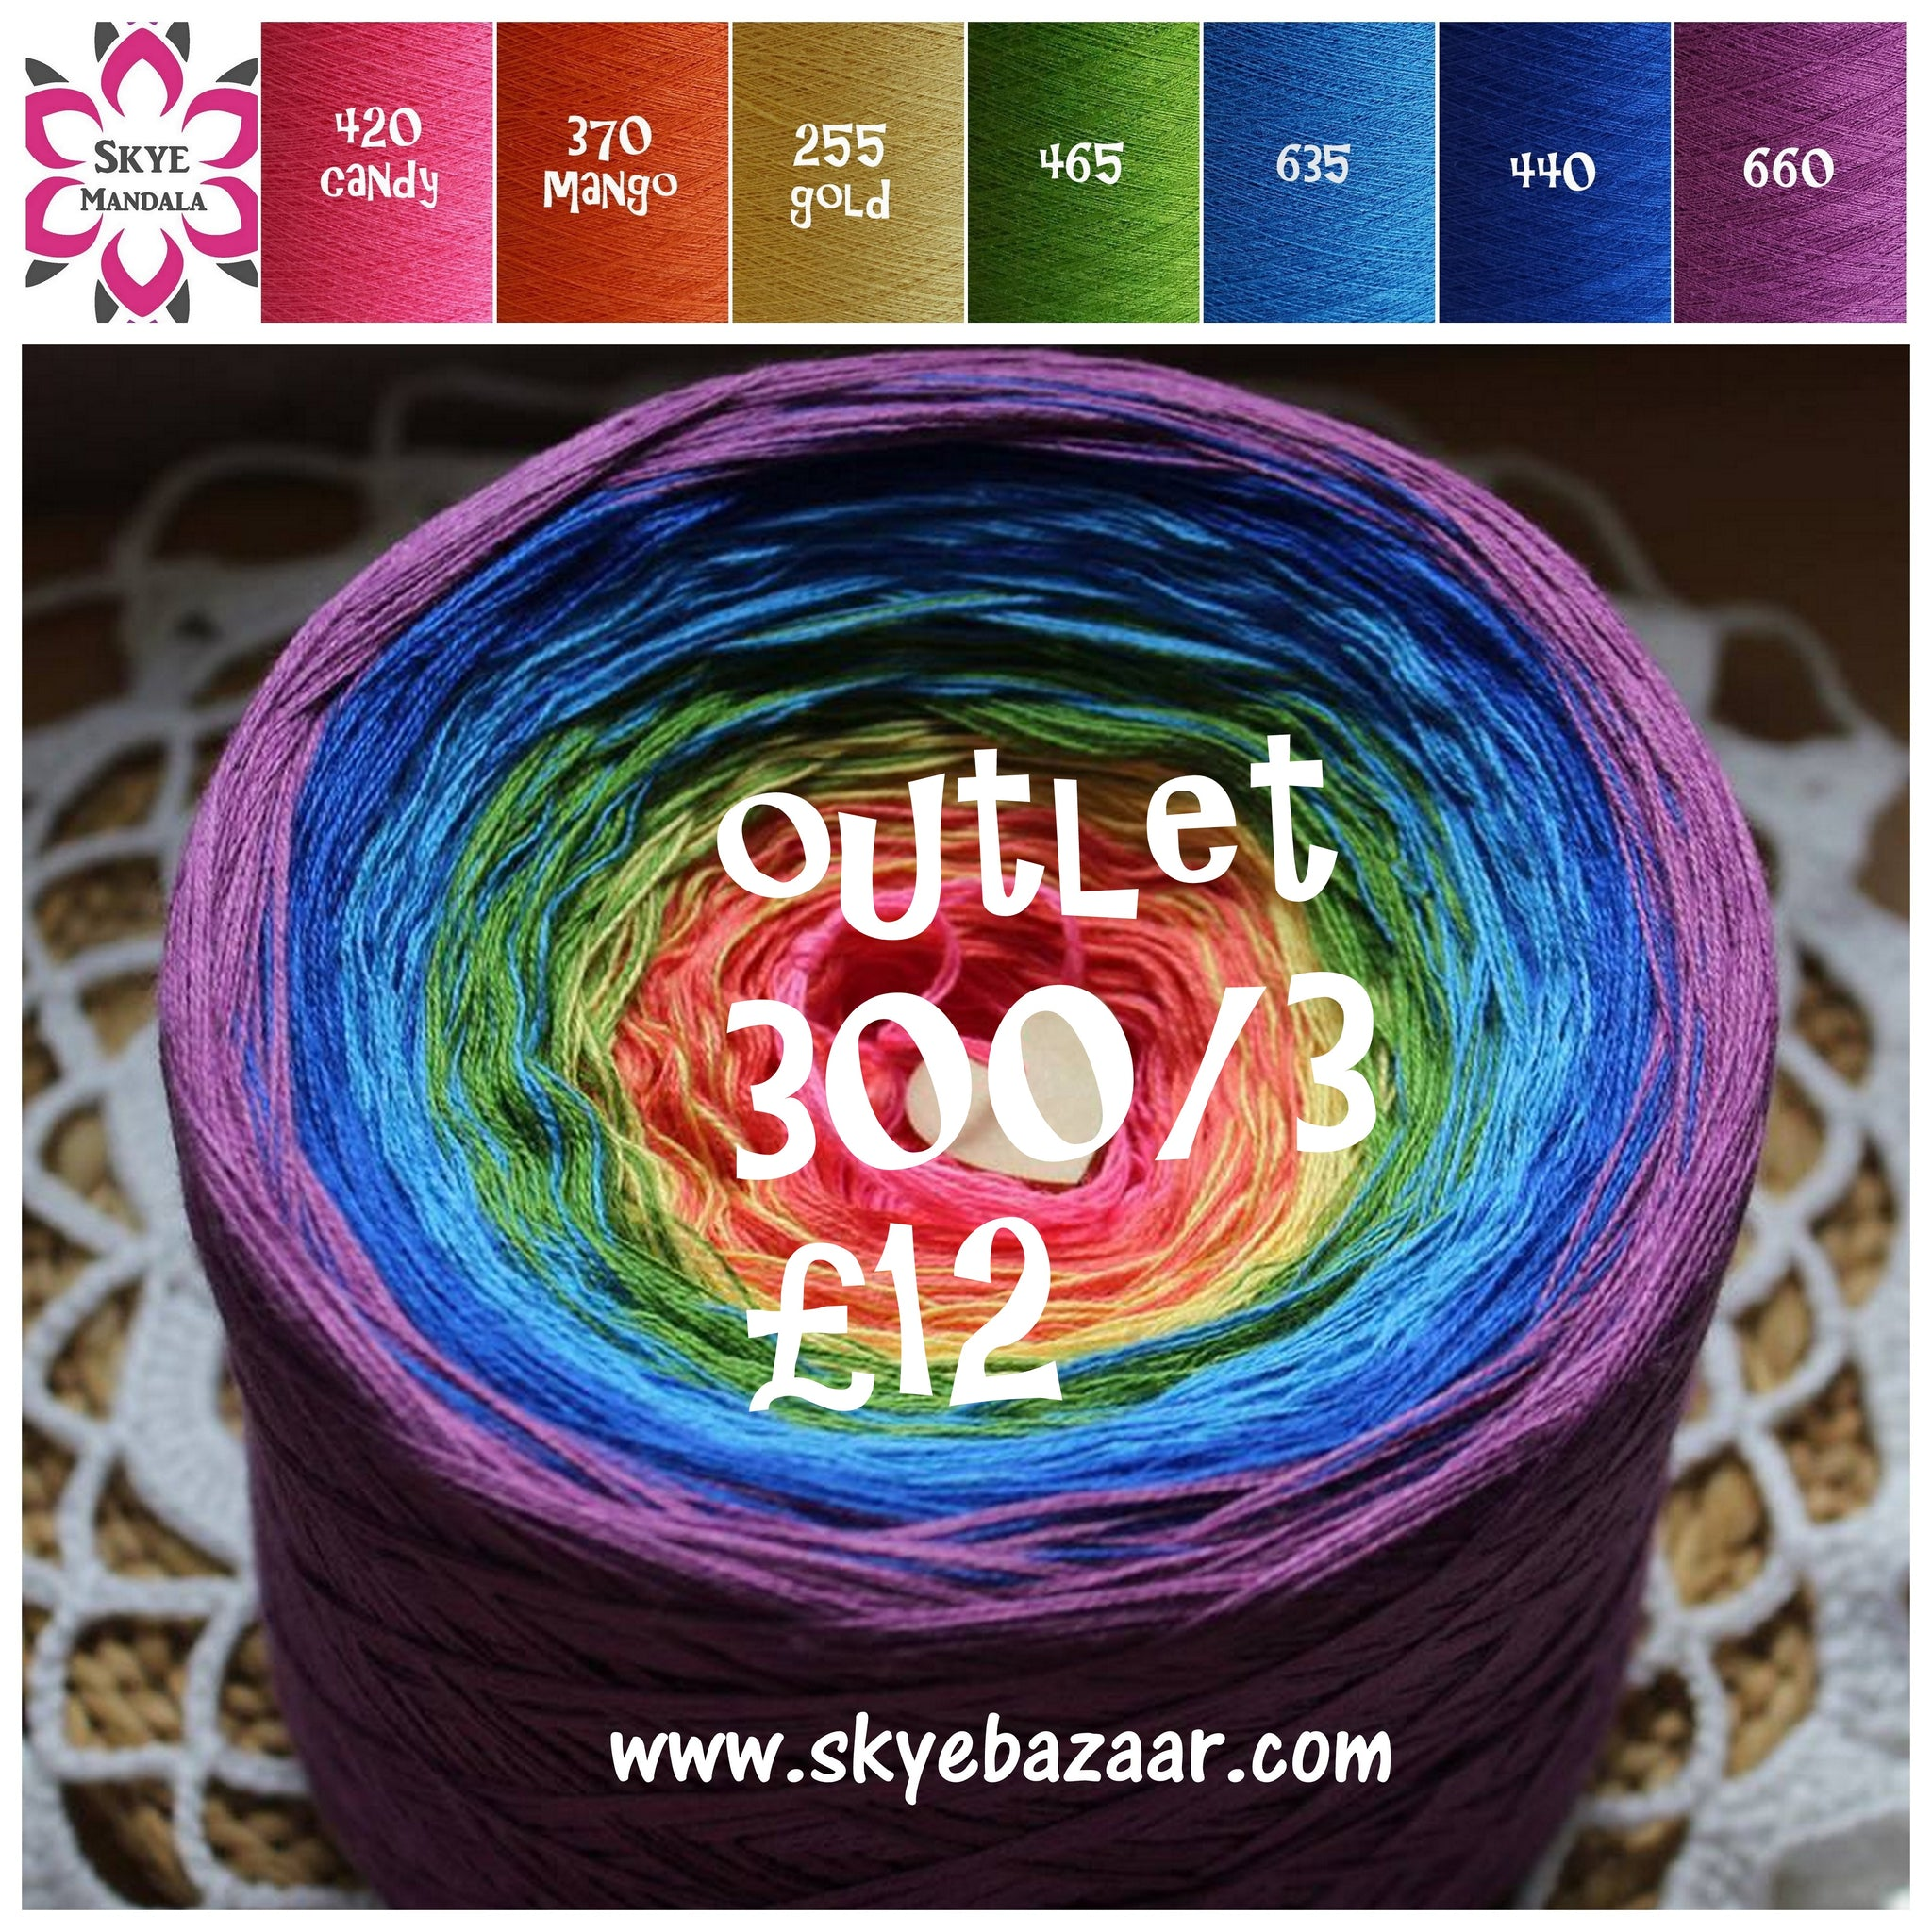 Skye Mandala Yarn OUTLET 420-370-255-465-635-440-660